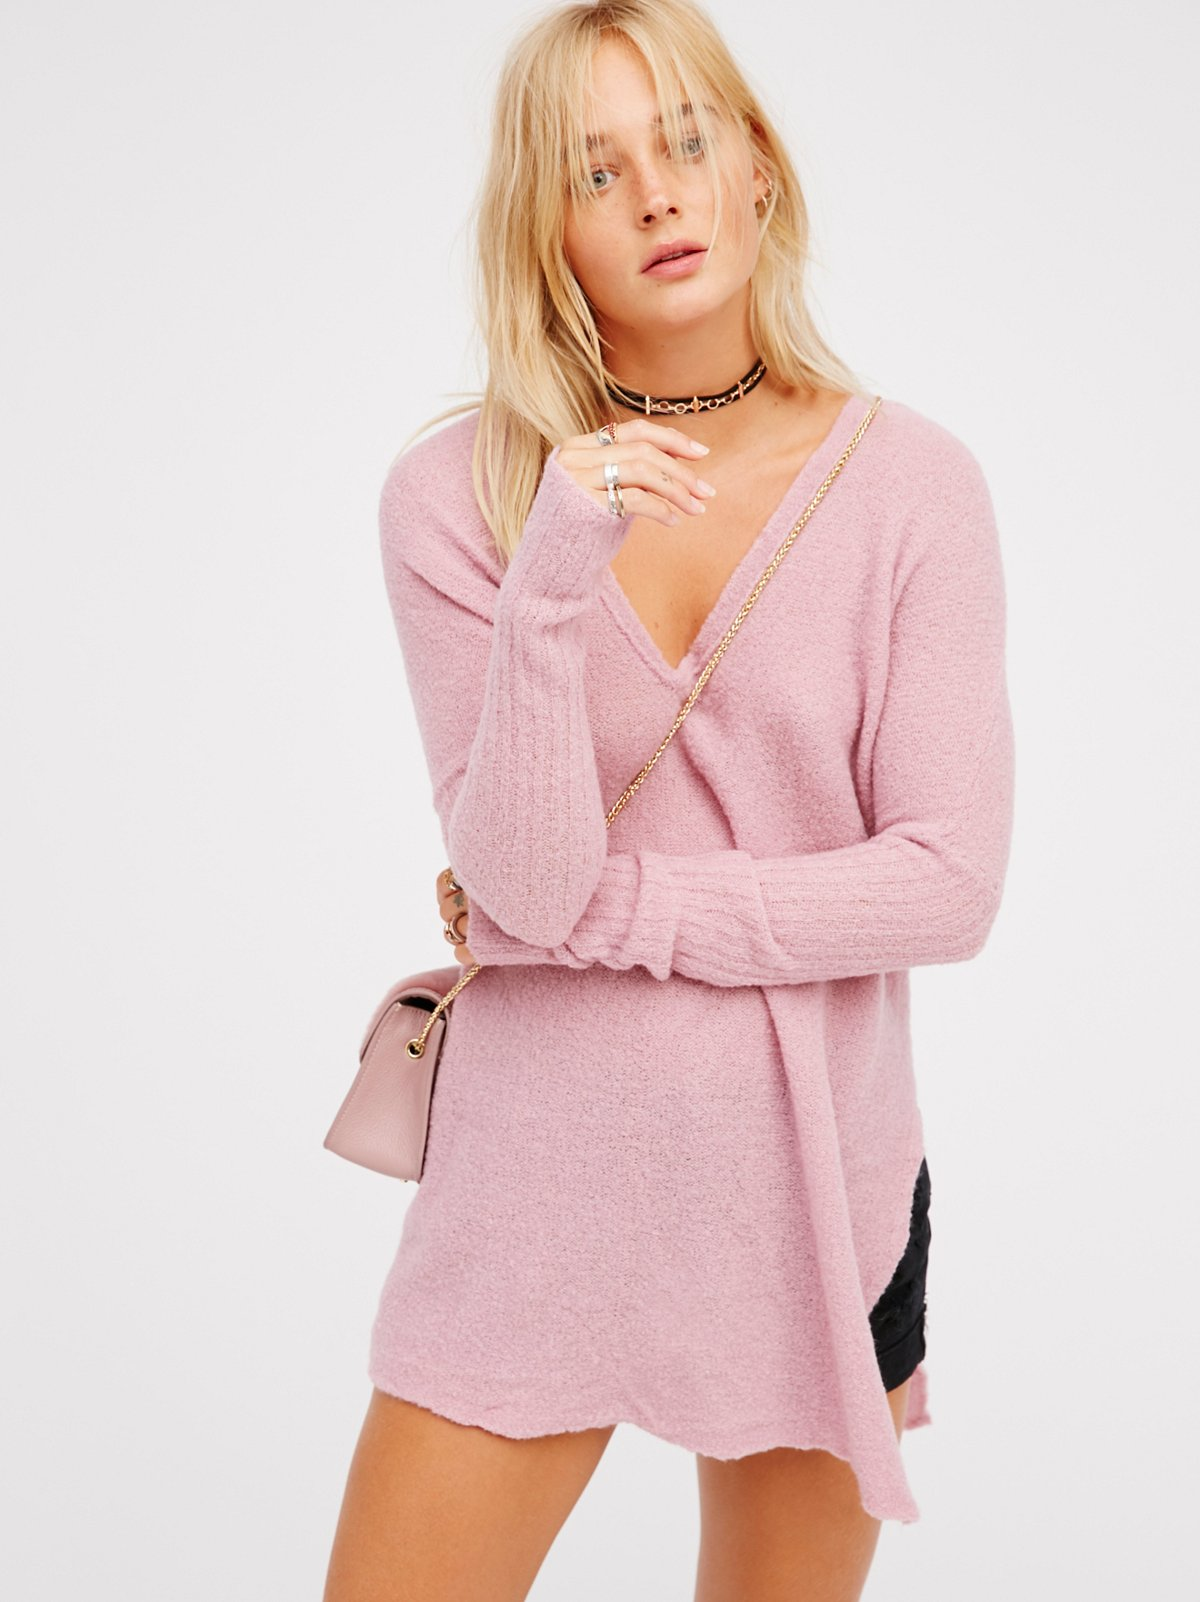 Cloud Surfing Cashmere Pullover